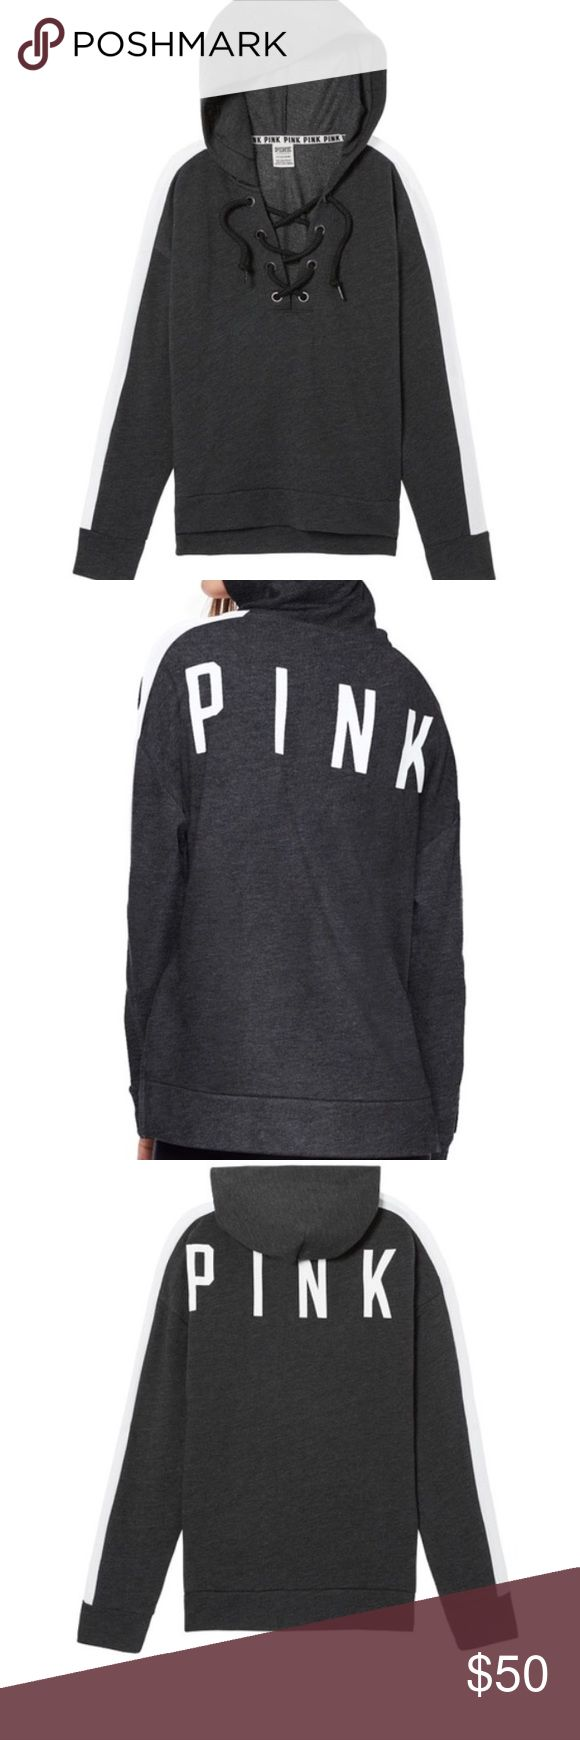 Best 25  Vs pink hoodie ideas on Pinterest | Pink clothing brand ...